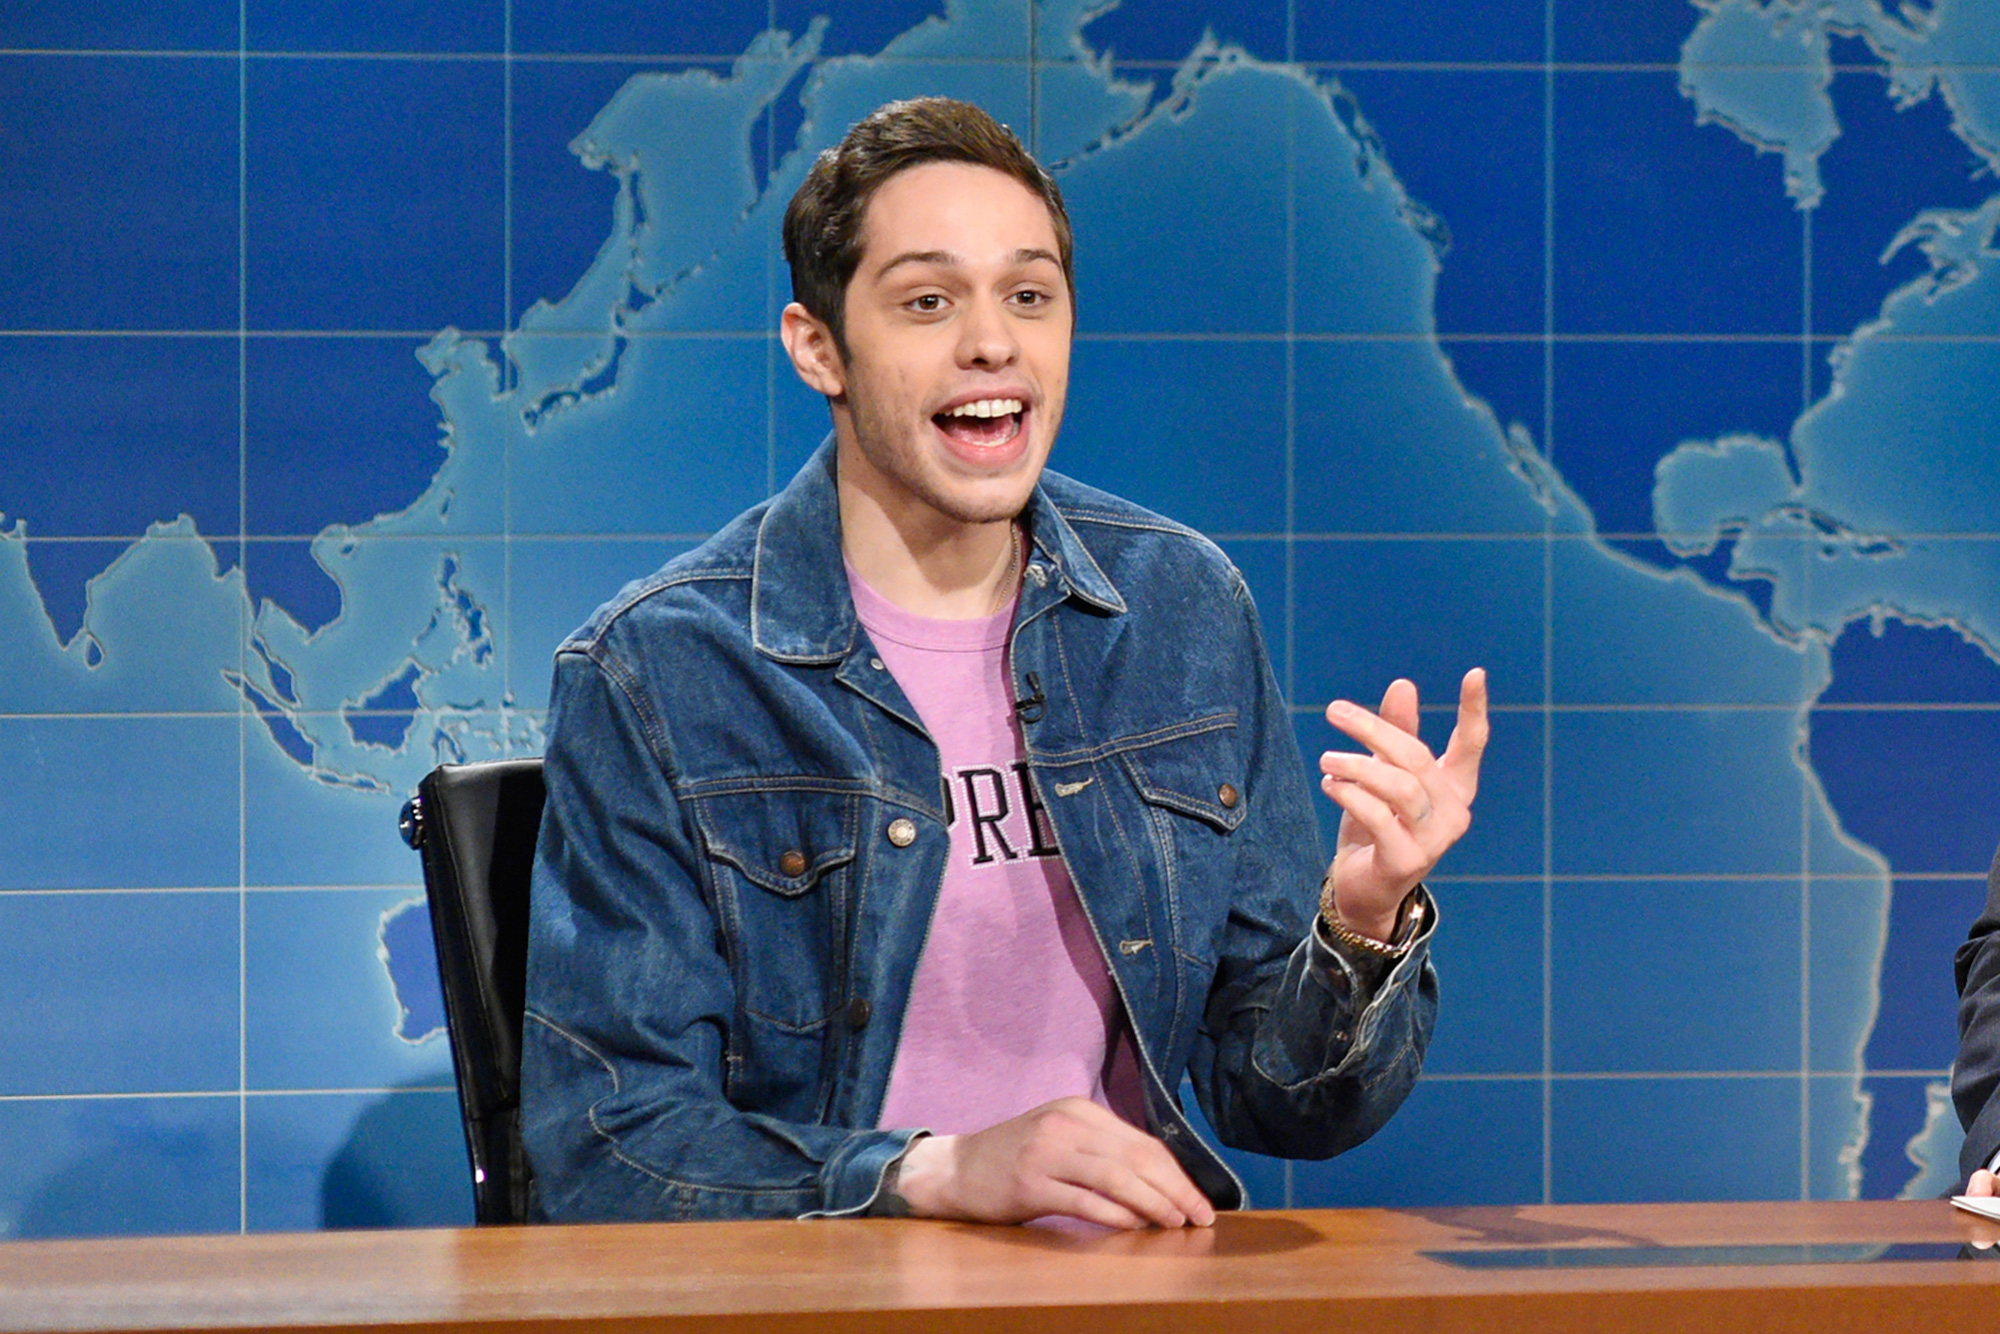 Pete Davidson Opens Up About Mental Health on 'SNL'